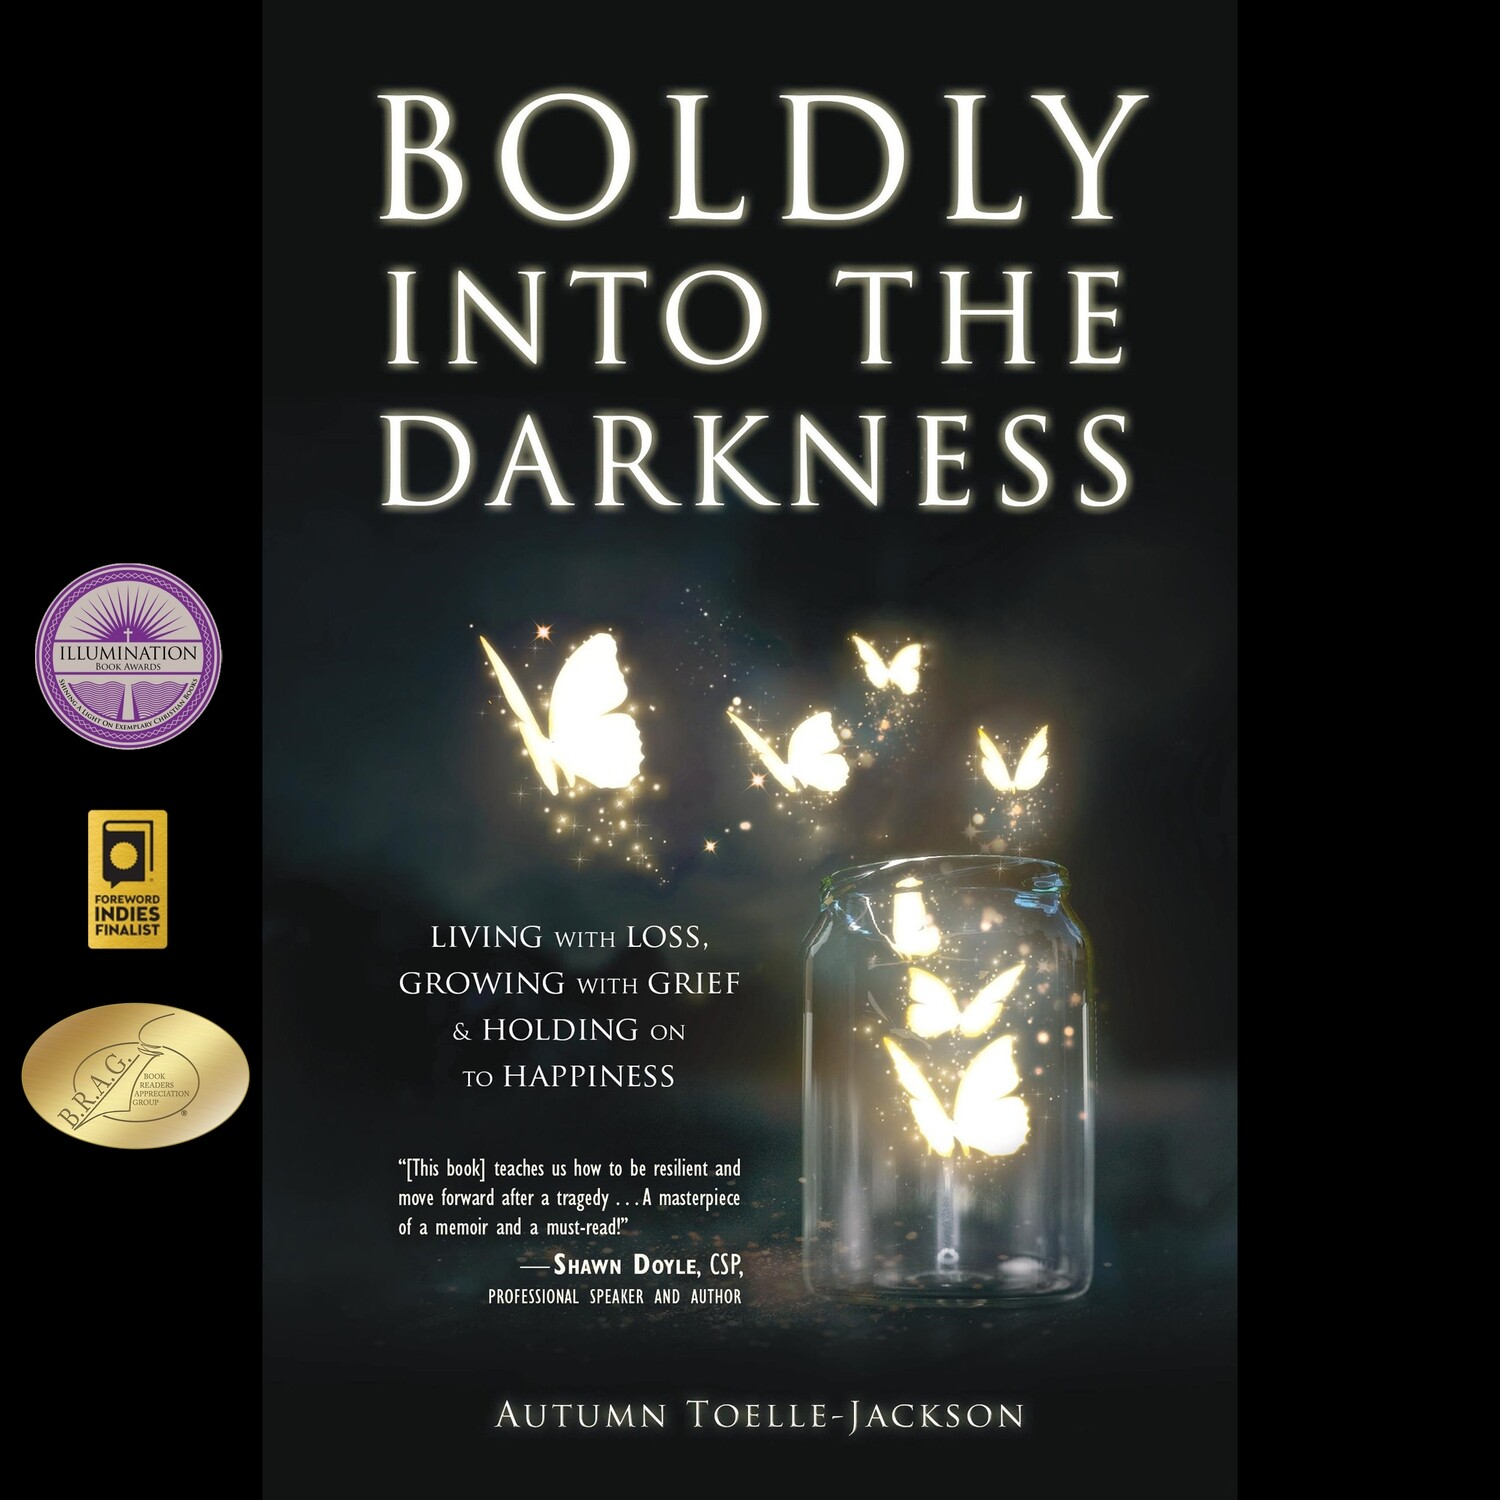 Boldly into the Darkness: Living with Loss, Growing with Grief & Holding onto Happiness (Audiobook)